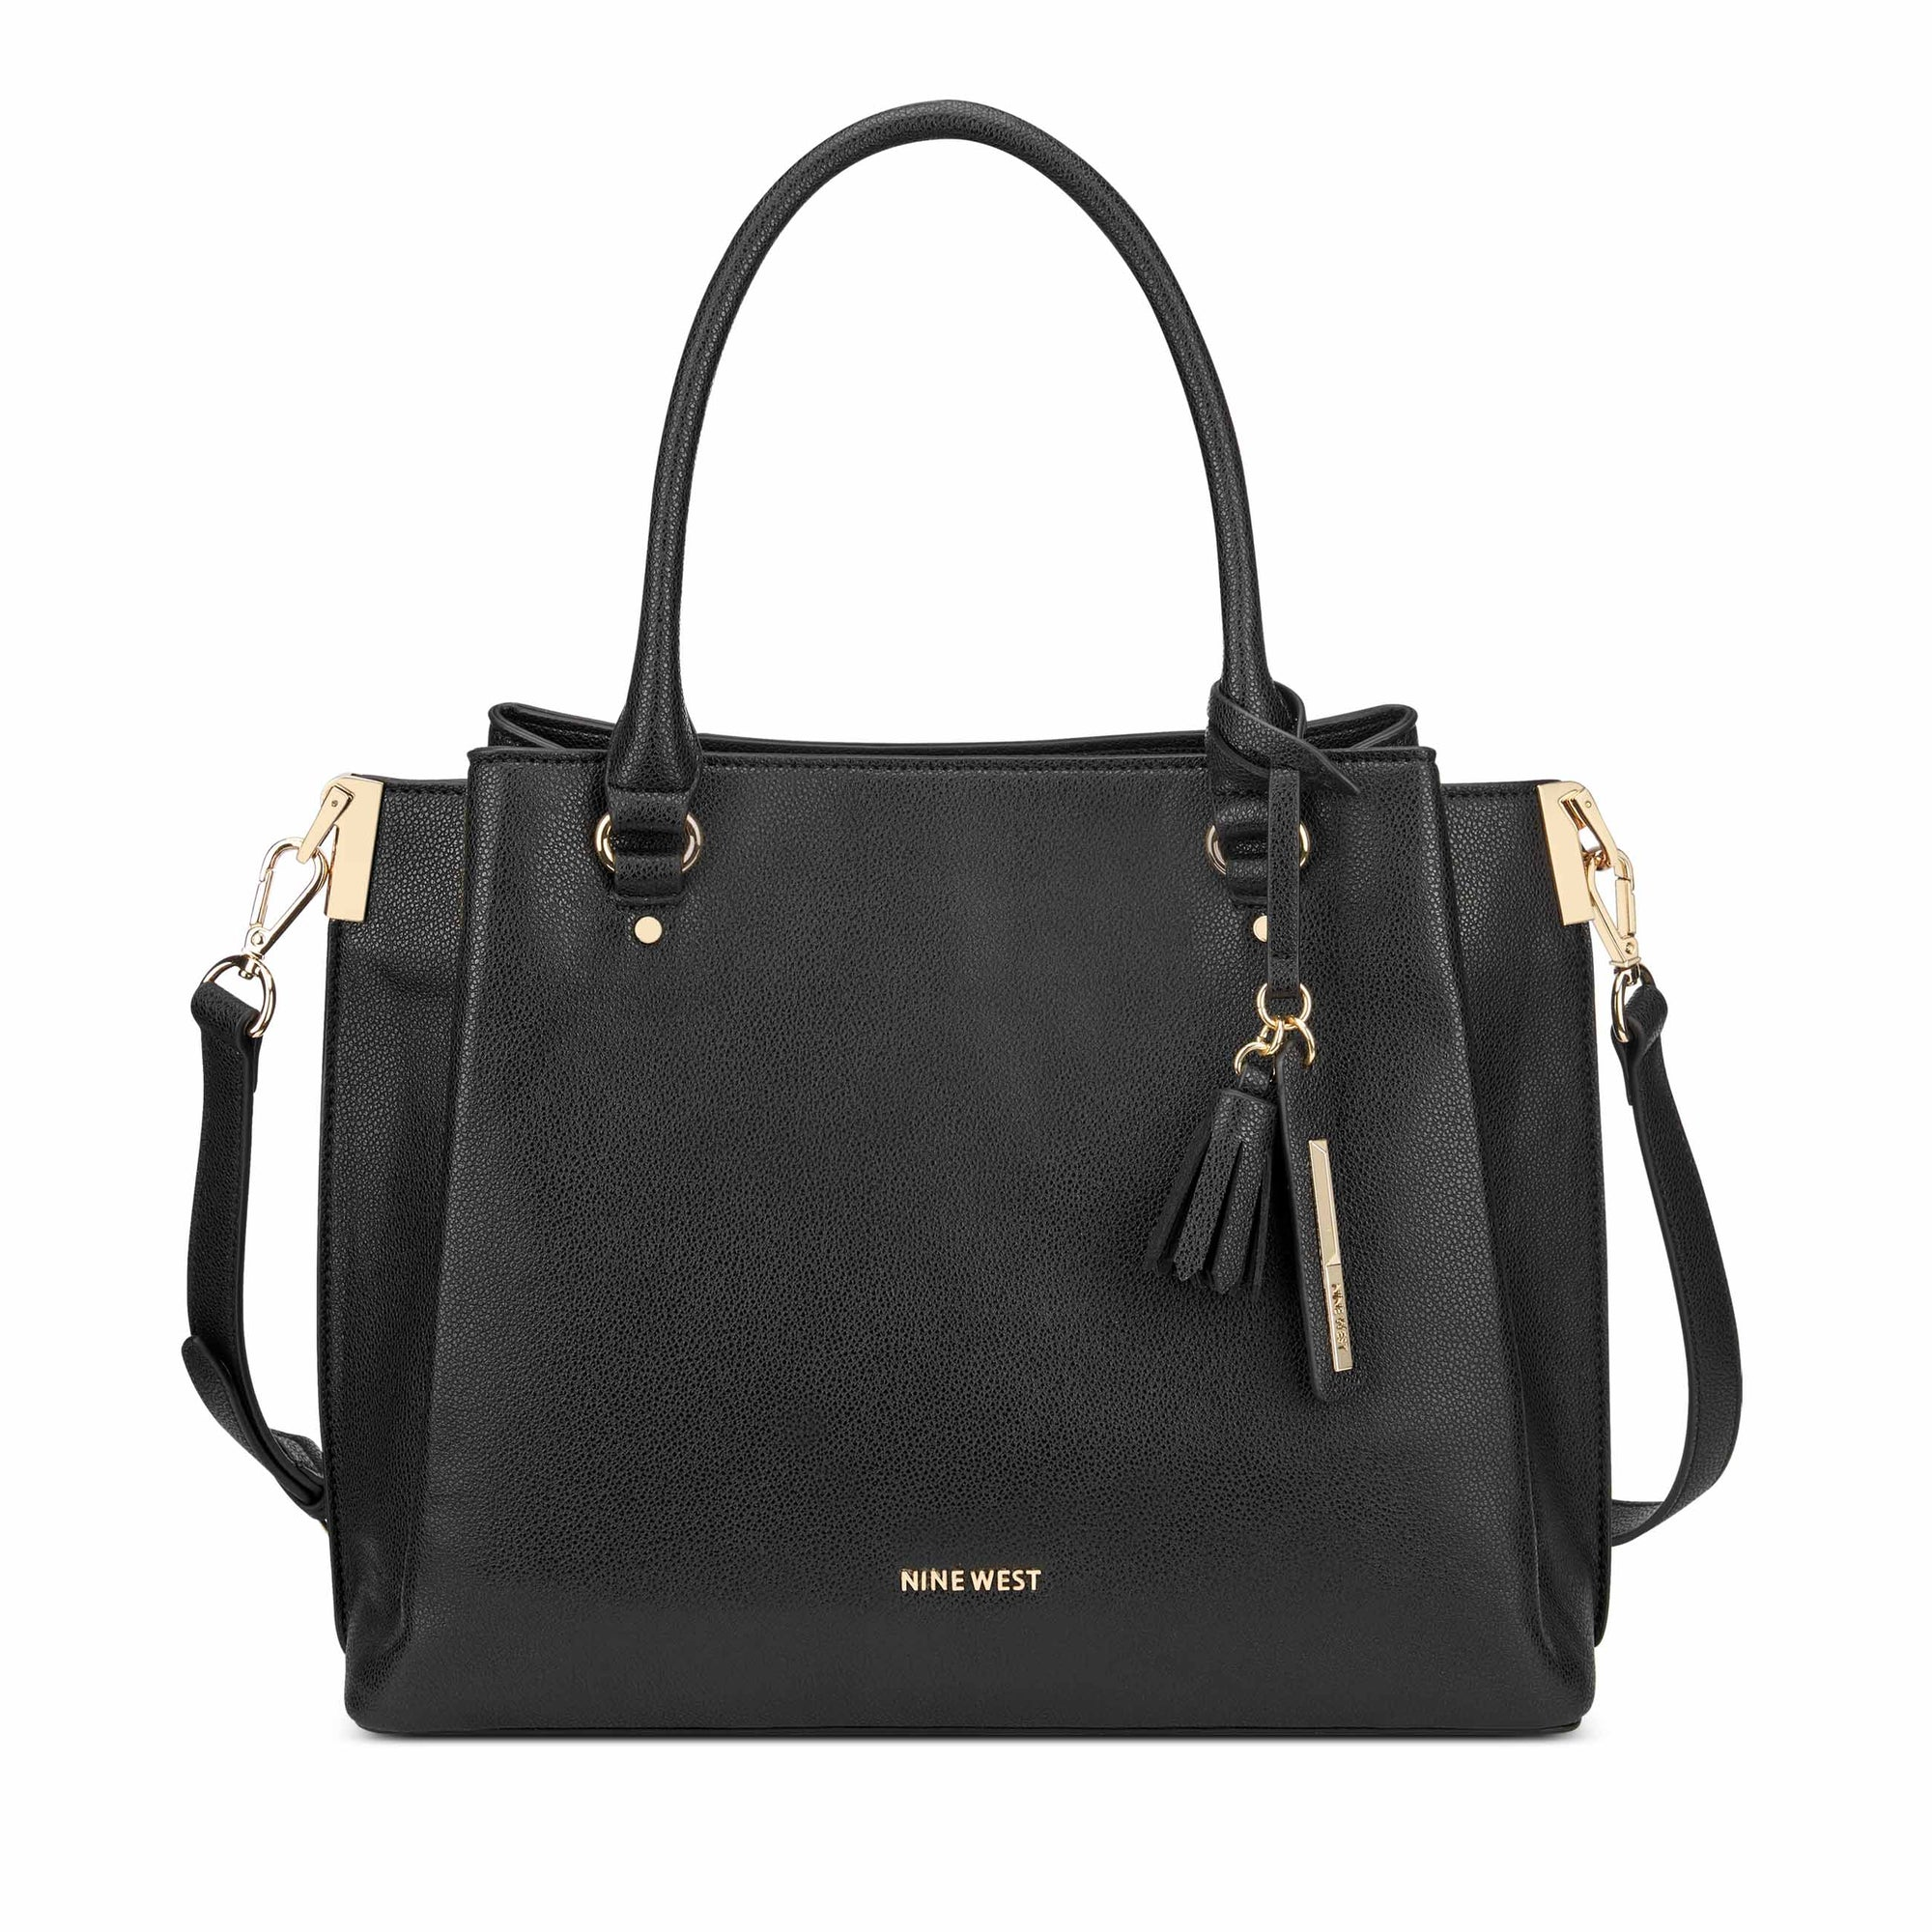 Imogen Large Jet Set Satchel